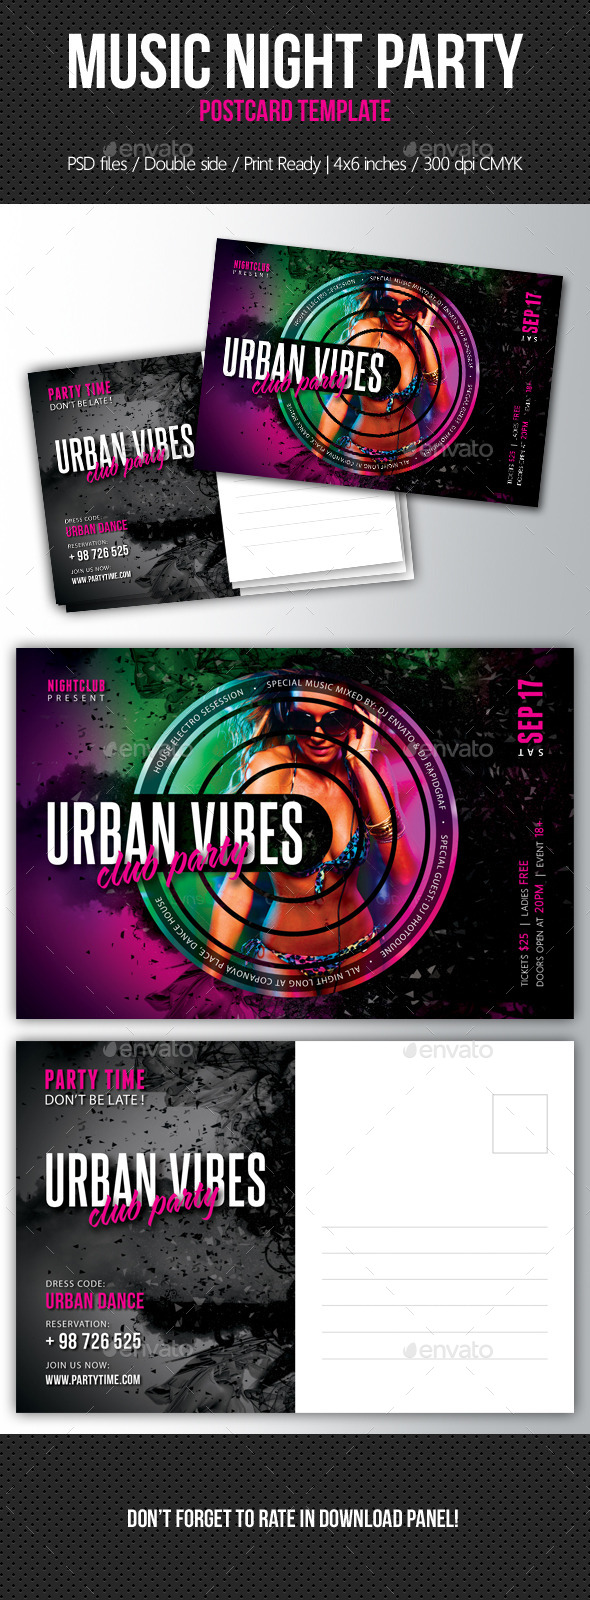 Music Night Party Postcard Template V08 - Invitations Cards & Invites